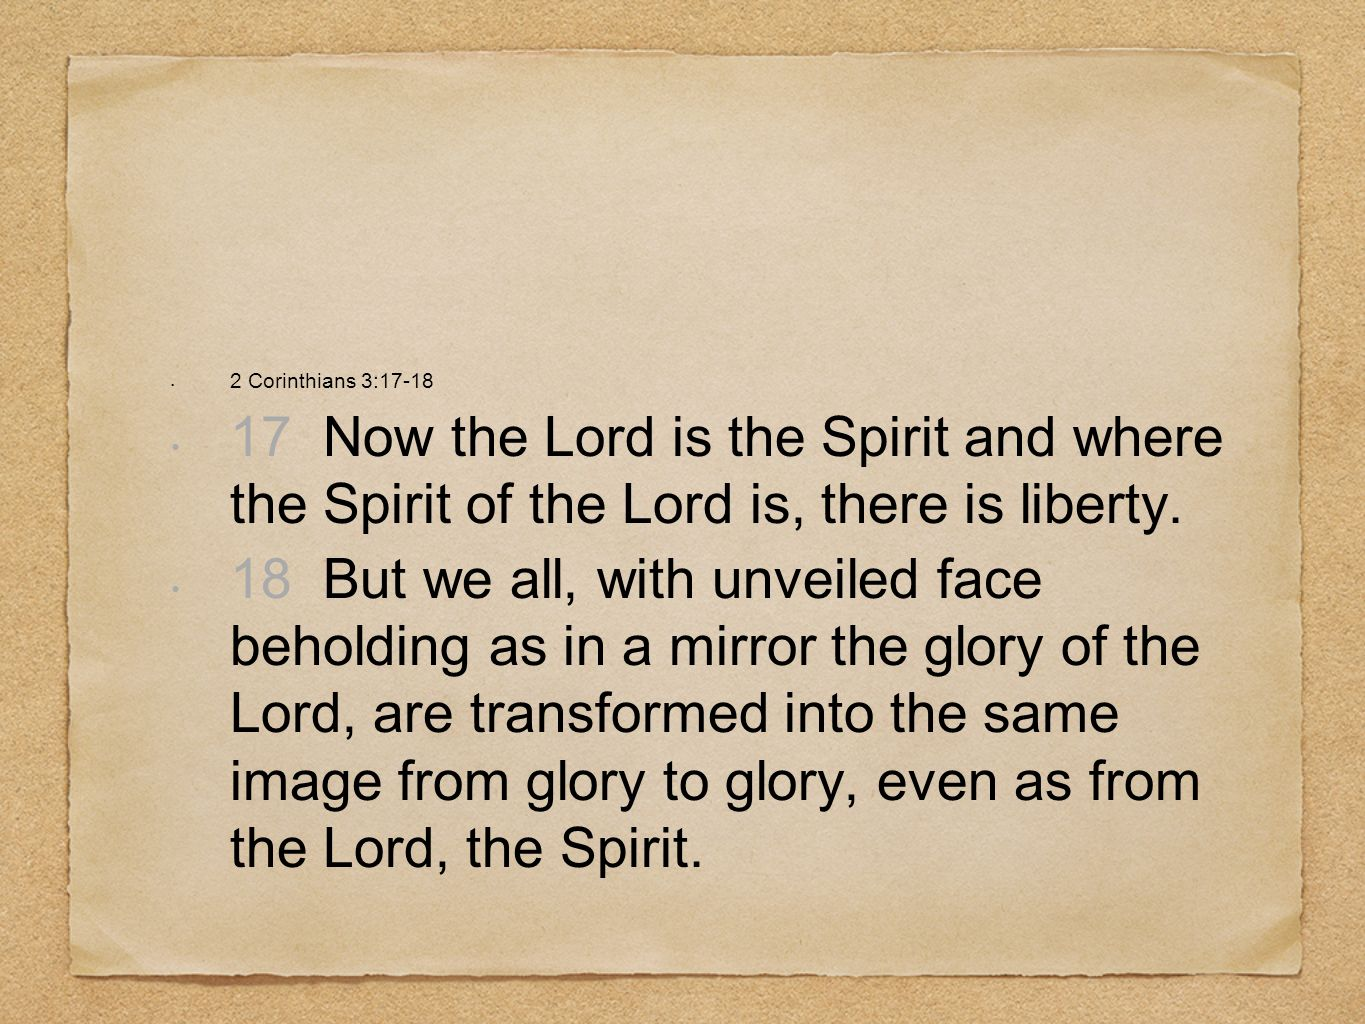 2 Corinthians 3:17-18 17 Now the Lord is the Spirit and where the Spirit of the Lord is, there is liberty. 18 But we all, with unveiled face beholding